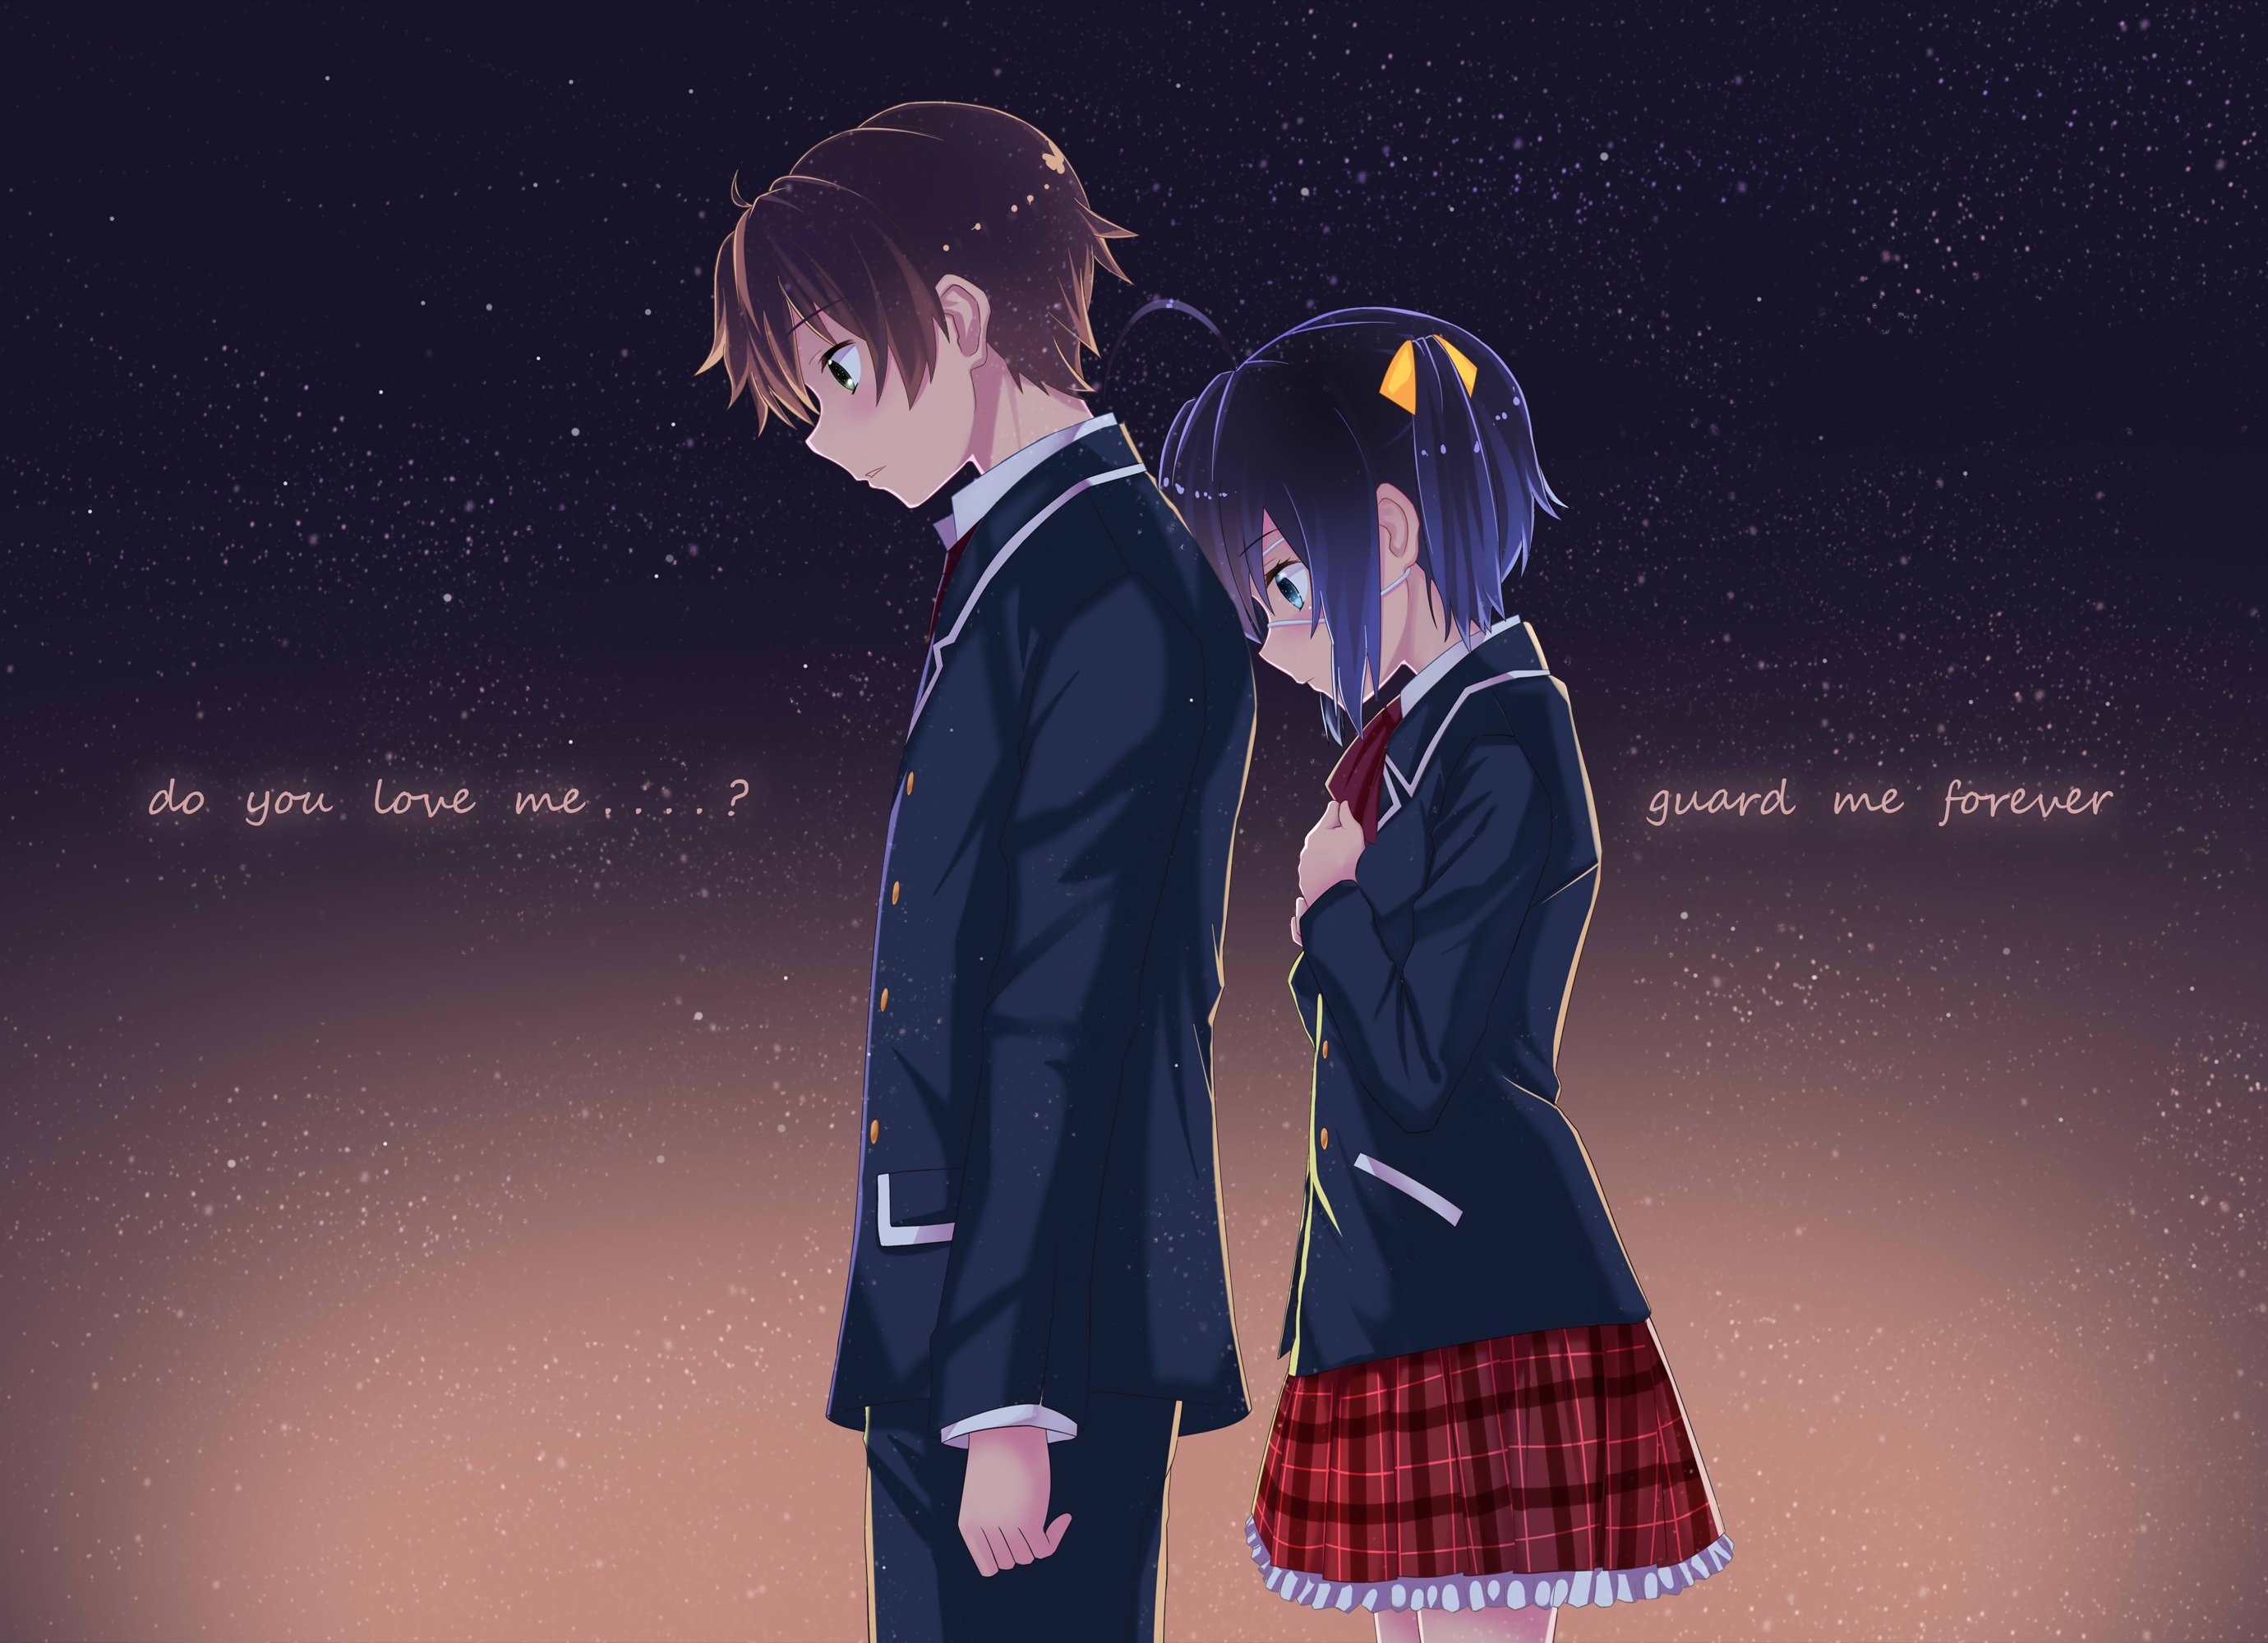 chuunibyou rikka and yuuta wallpapers - photo #2